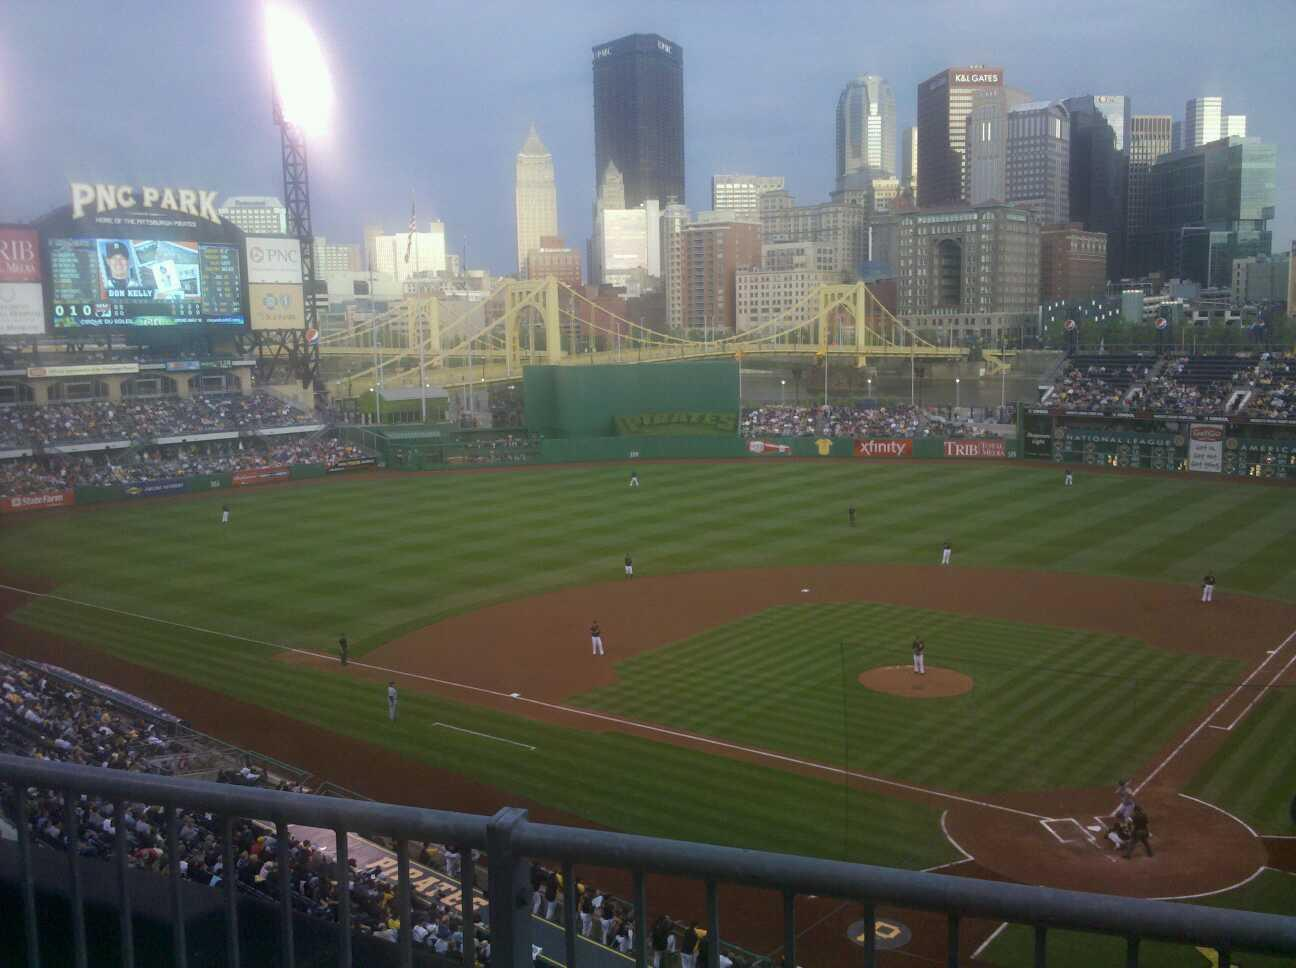 PNC Park Section 219 Row B Seat 7